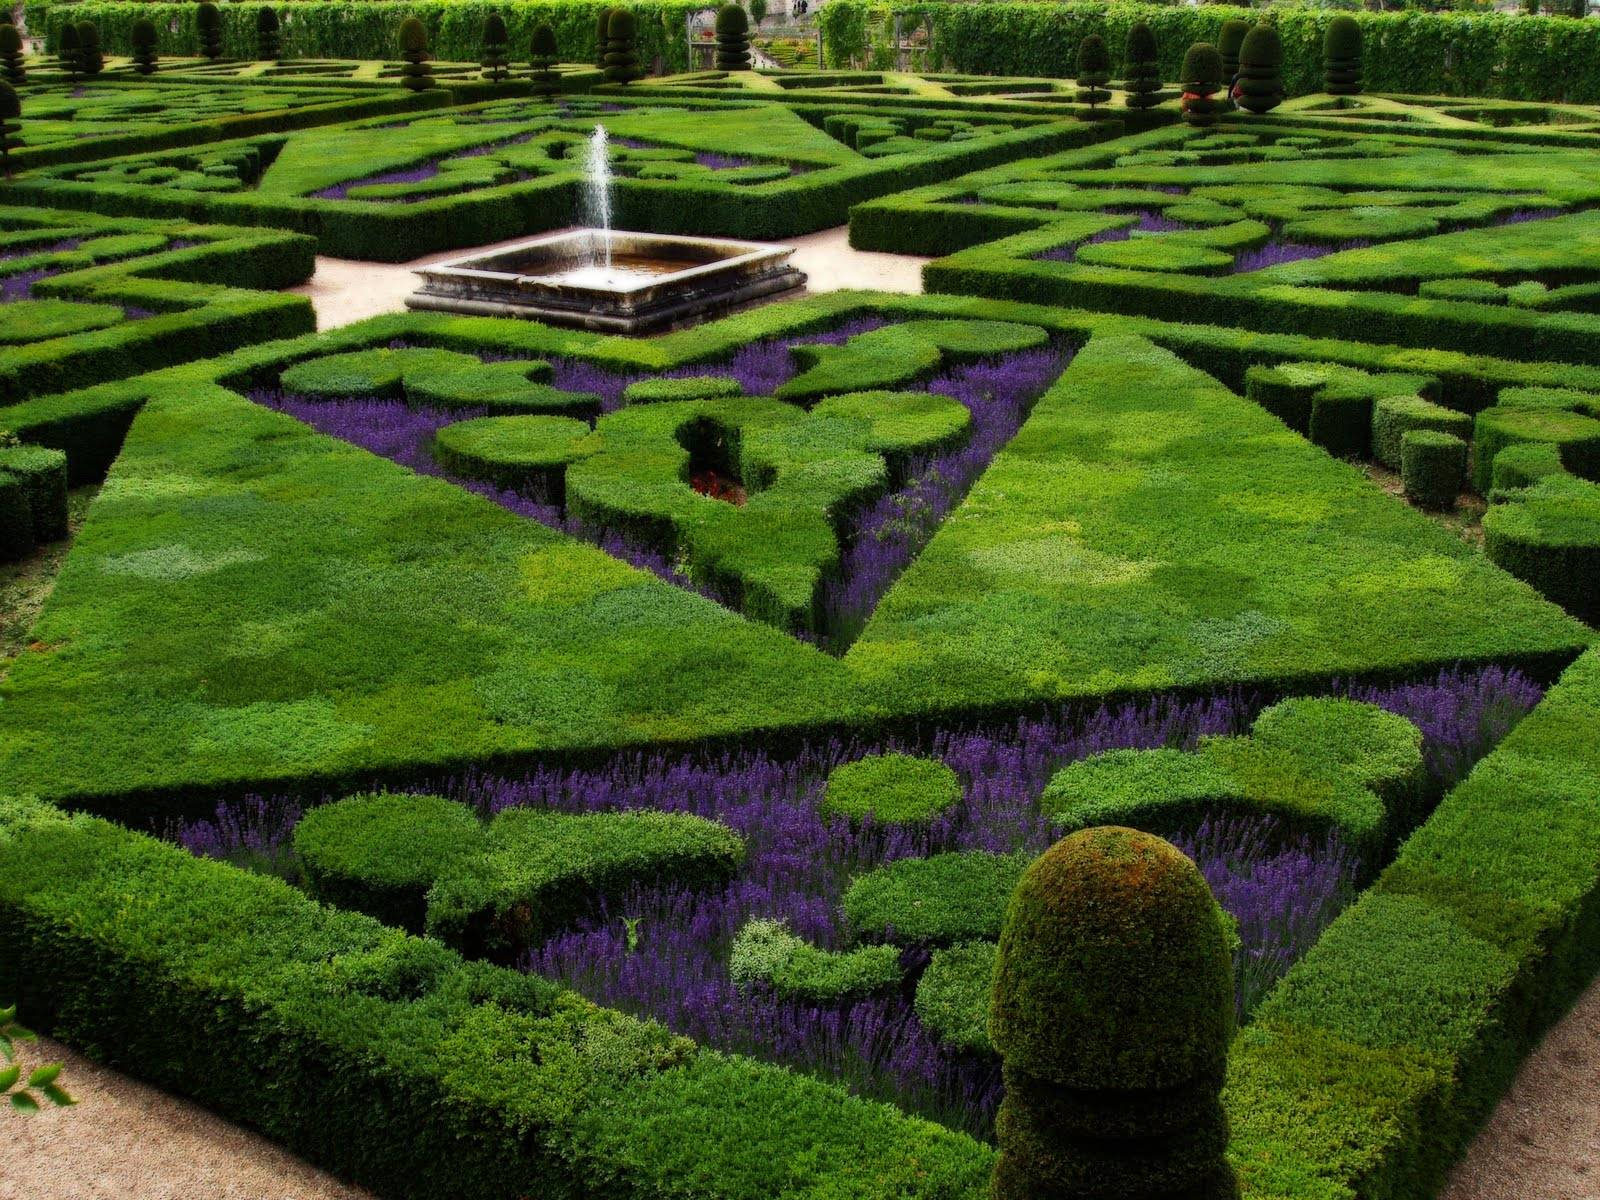 http://3.bp.blogspot.com/_2U3U6AwE-ZQ/S6tK3UIEyKI/AAAAAAAAAIg/z5yrOej6LwA/s1600/French_Formal_Garden_in_Loire_Valley(www.TheWallpapers.org).JPG